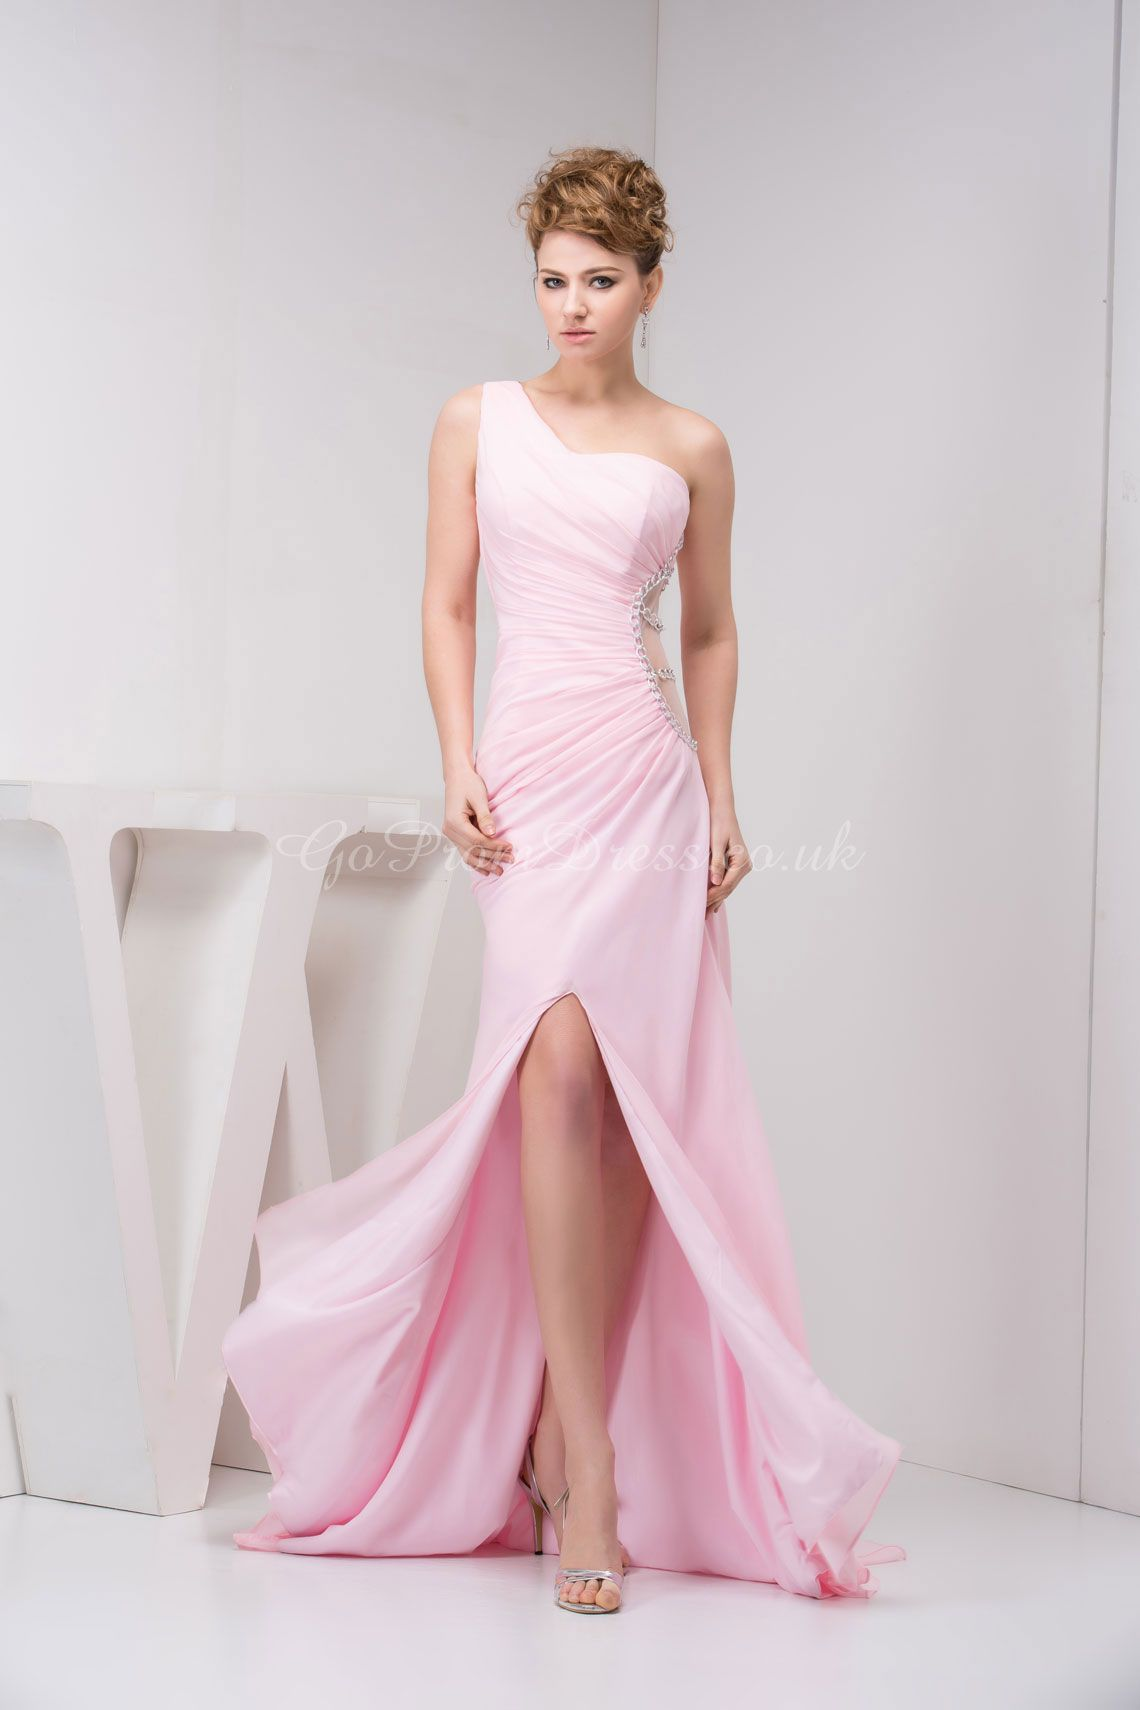 Prom dress ces pinterest prom dress prom and shoulder